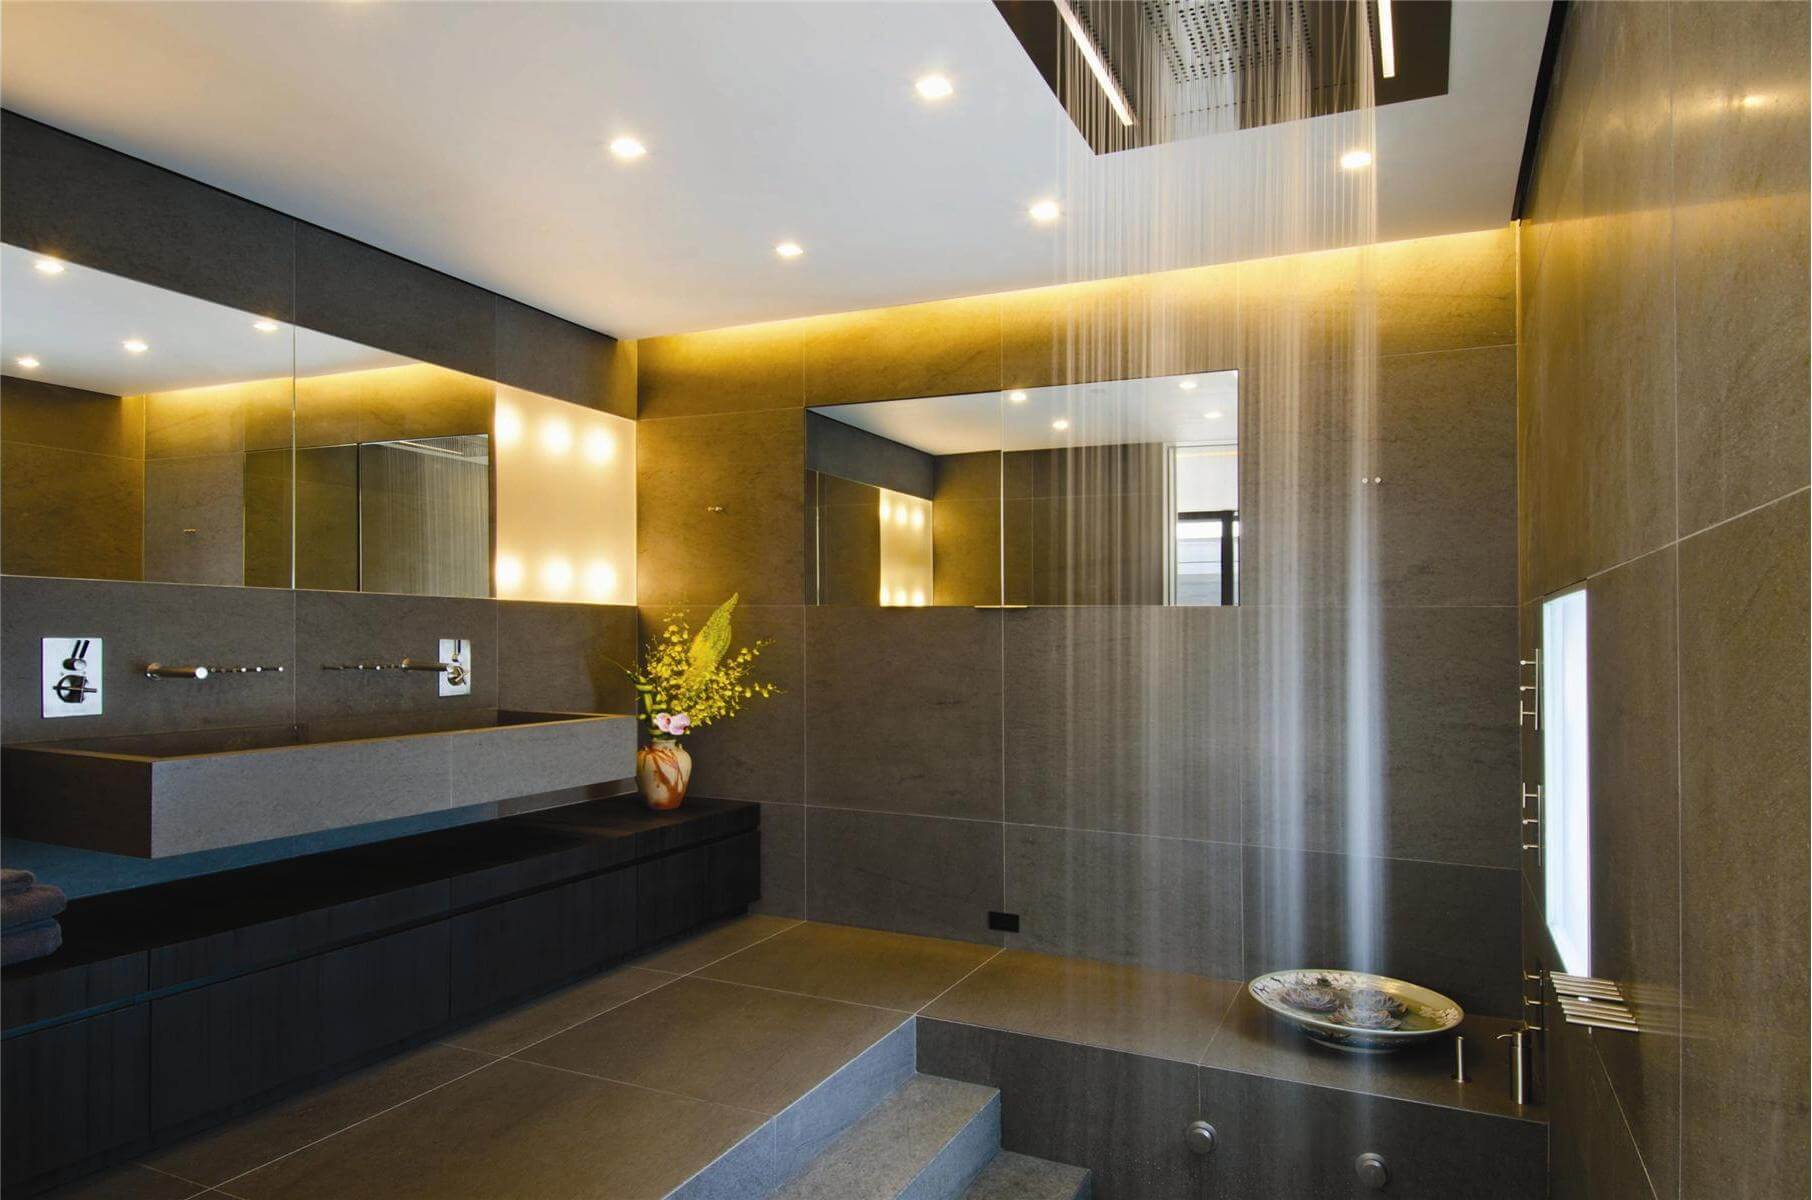 bathroom design ideas - Master Bath Design Ideas